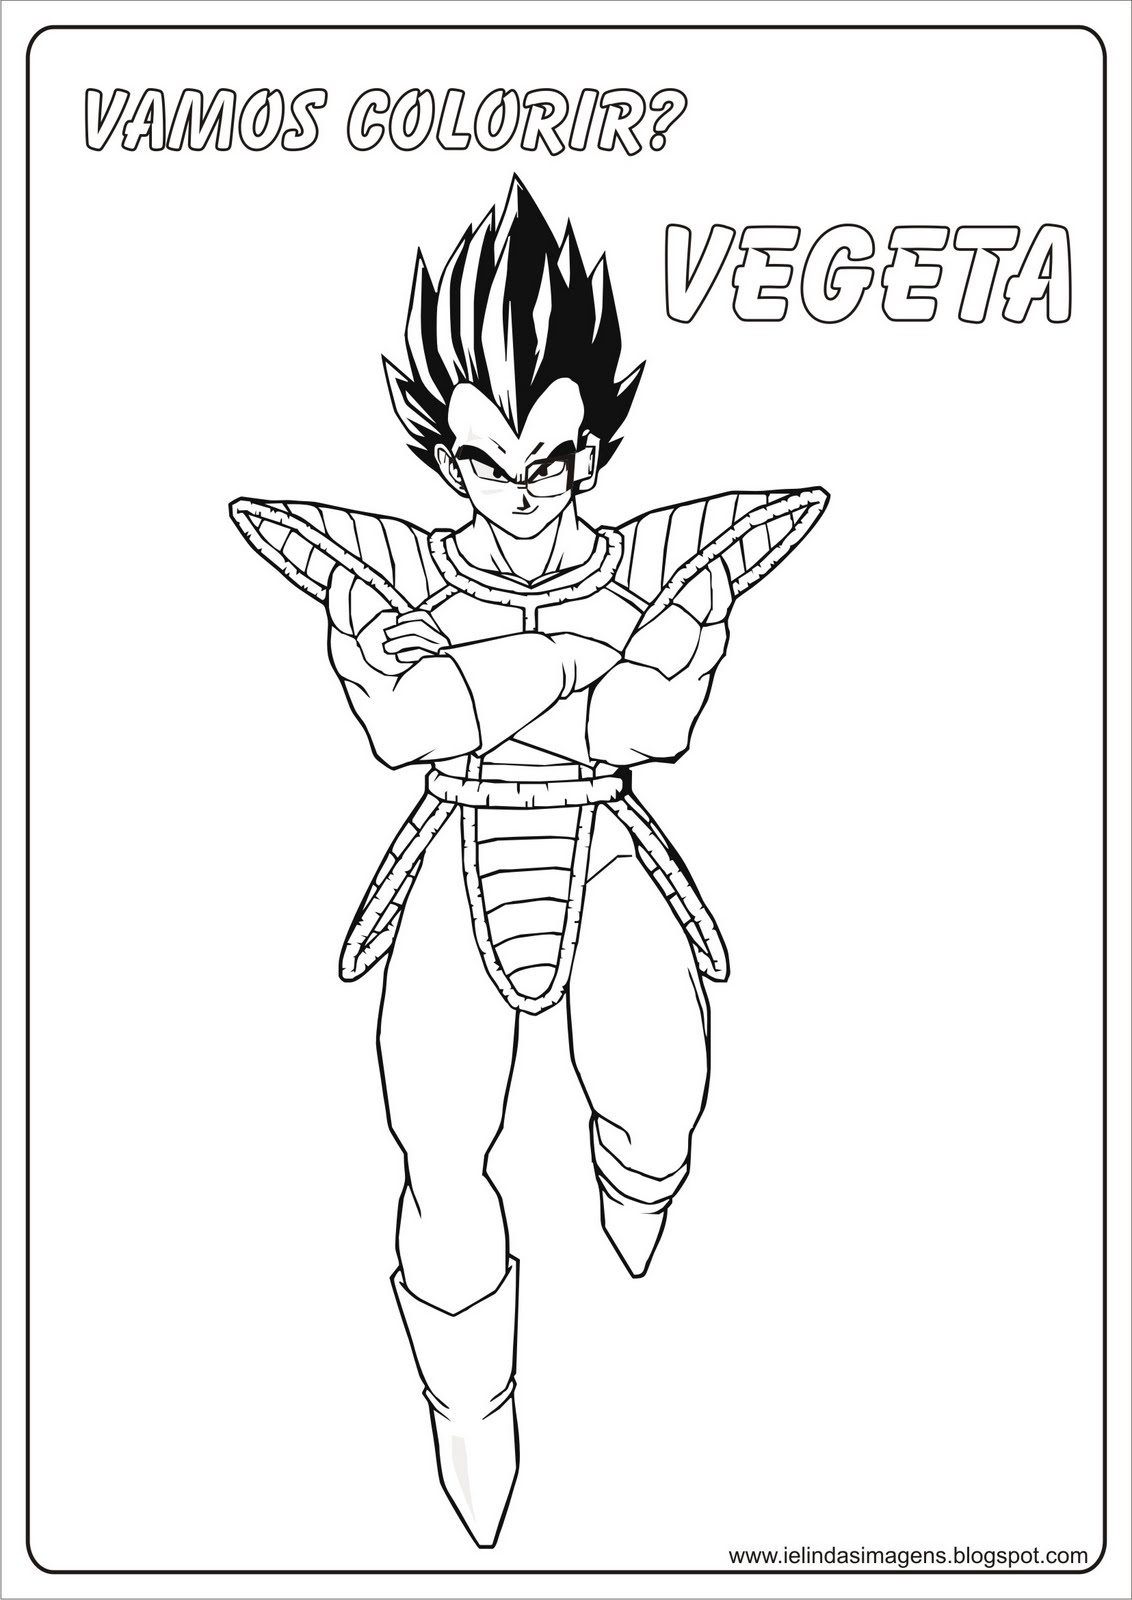 Dibujos para colorear de Dragon Ball Z vegetal - Imagui